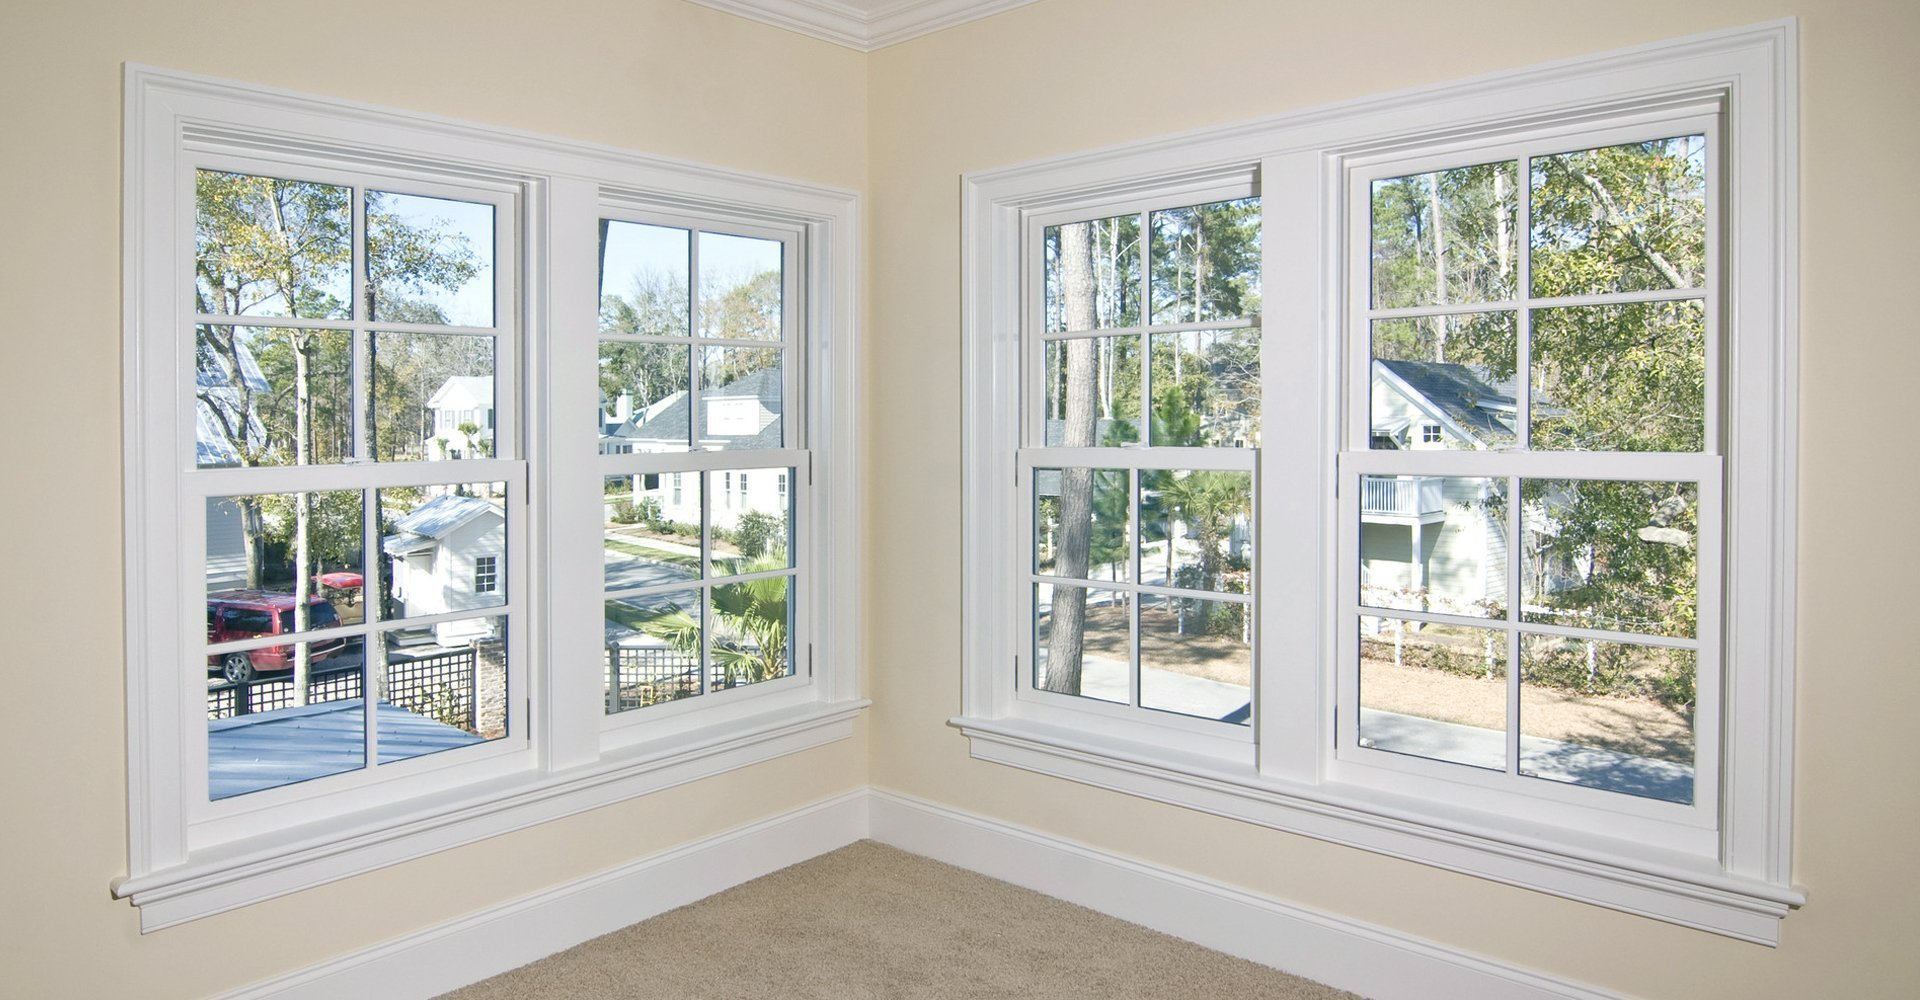 ventilated bedroom windows